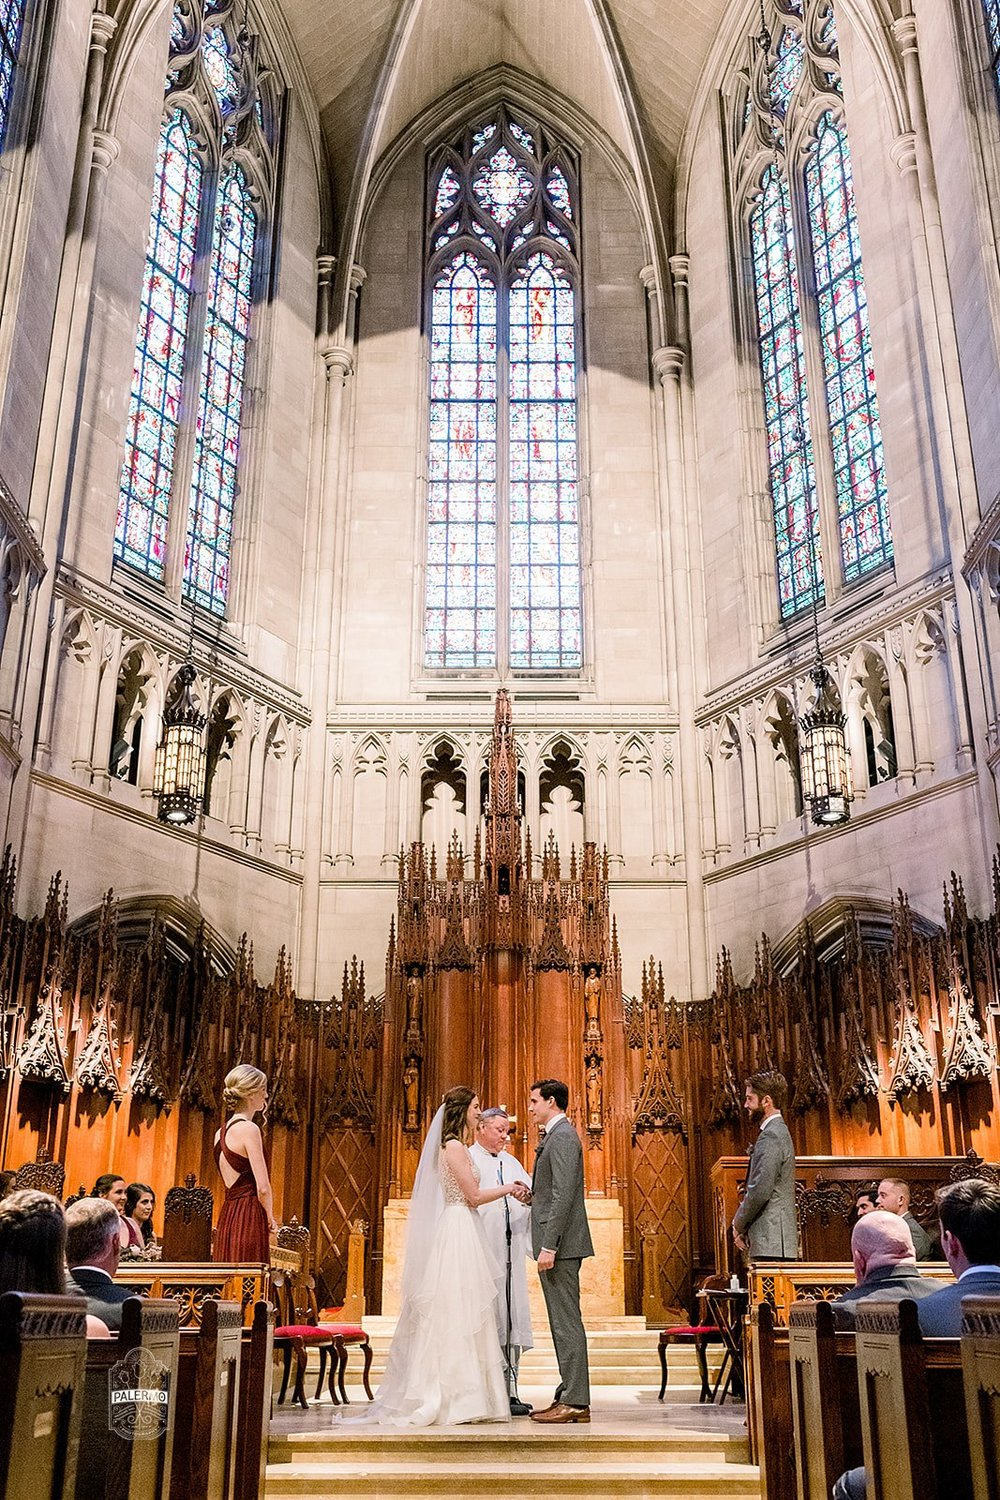 Bride and groom exchange vows during wedding ceremony at Heinz Chapel in Pittsburgh, PA planned by Exhale Events. Find more wedding inspiration at exhale-events.com!